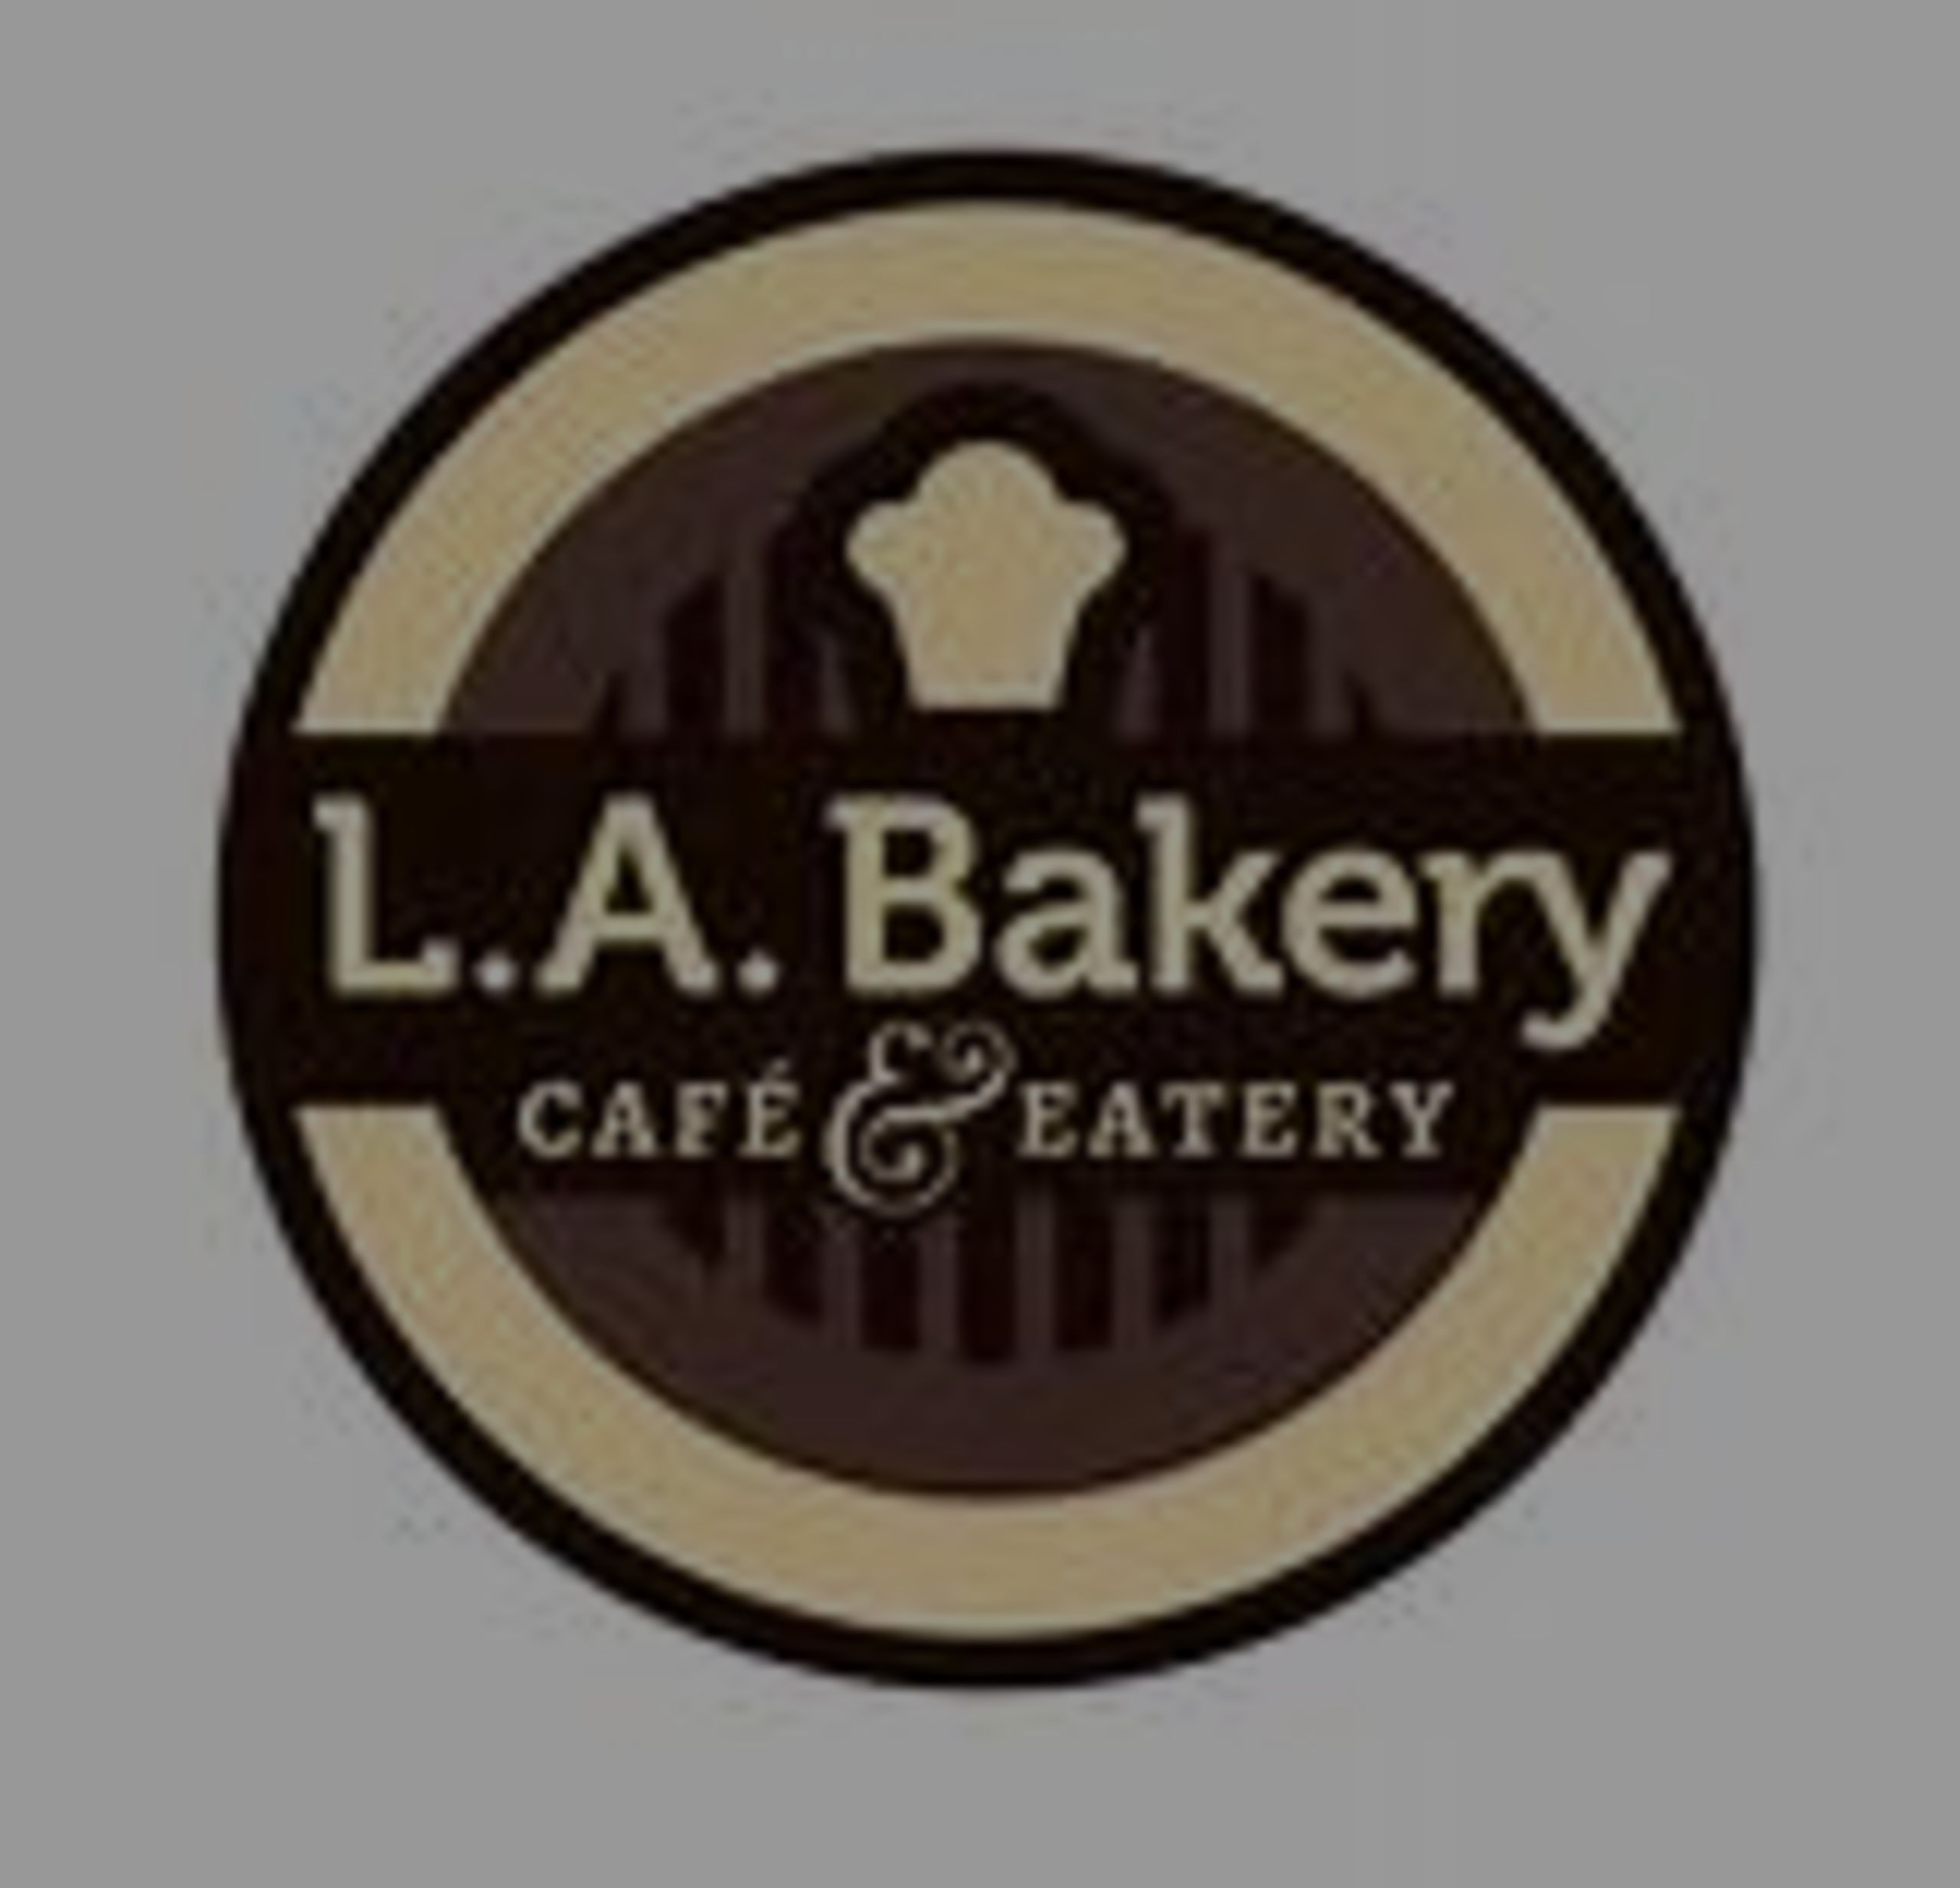 Around Carson City with Colleen McKoy: LA Bakery